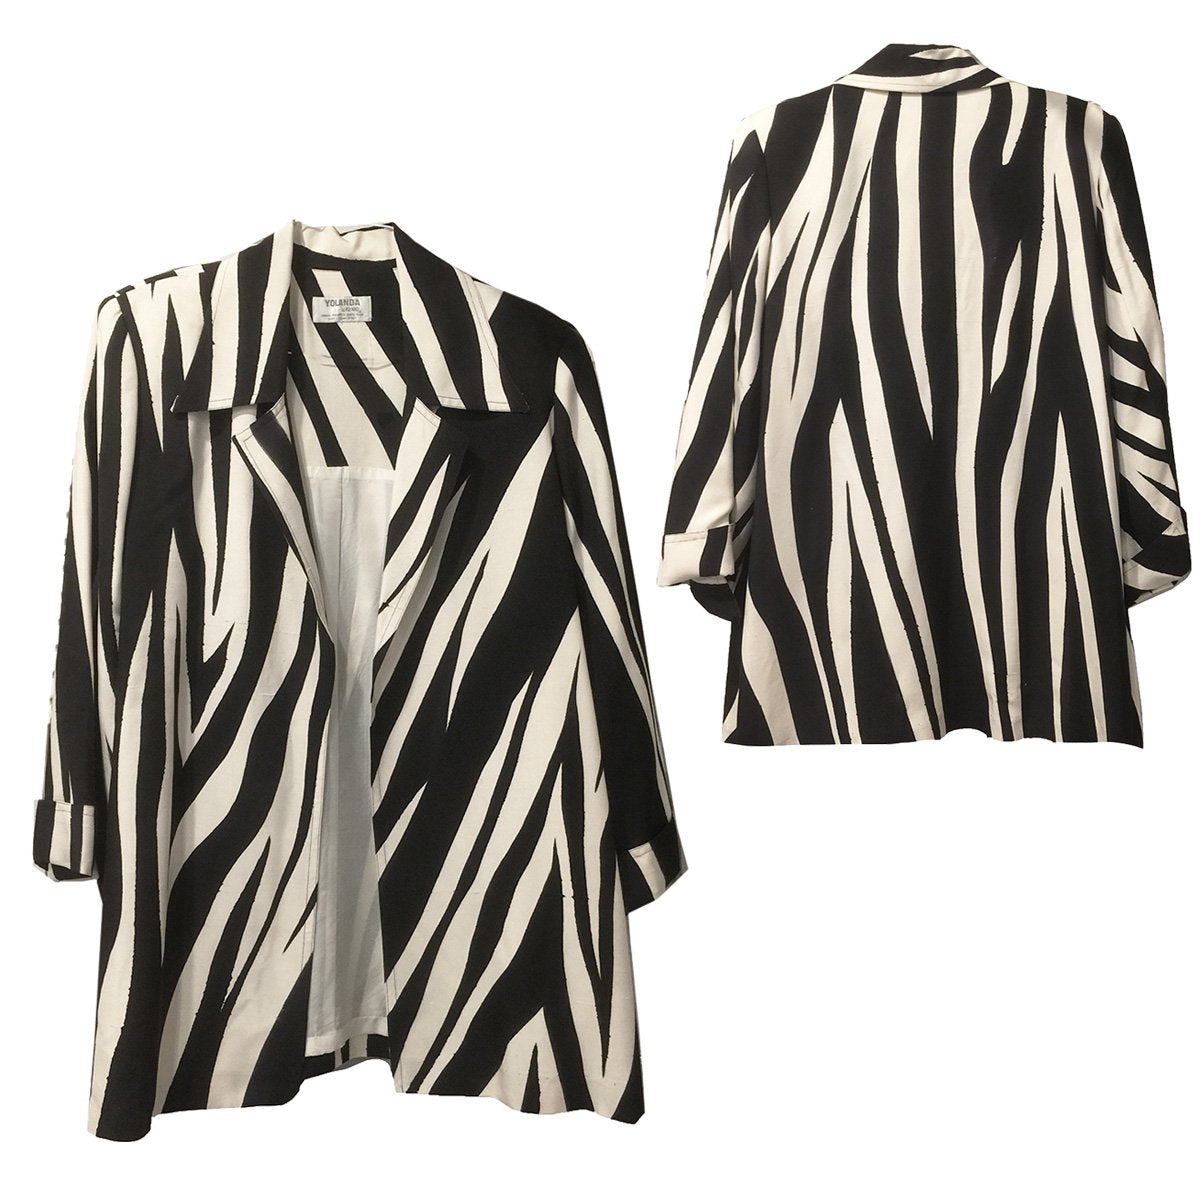 Yolanda Lorente clothing, yolanda hand-painted, black and white jacket, black and white blazer